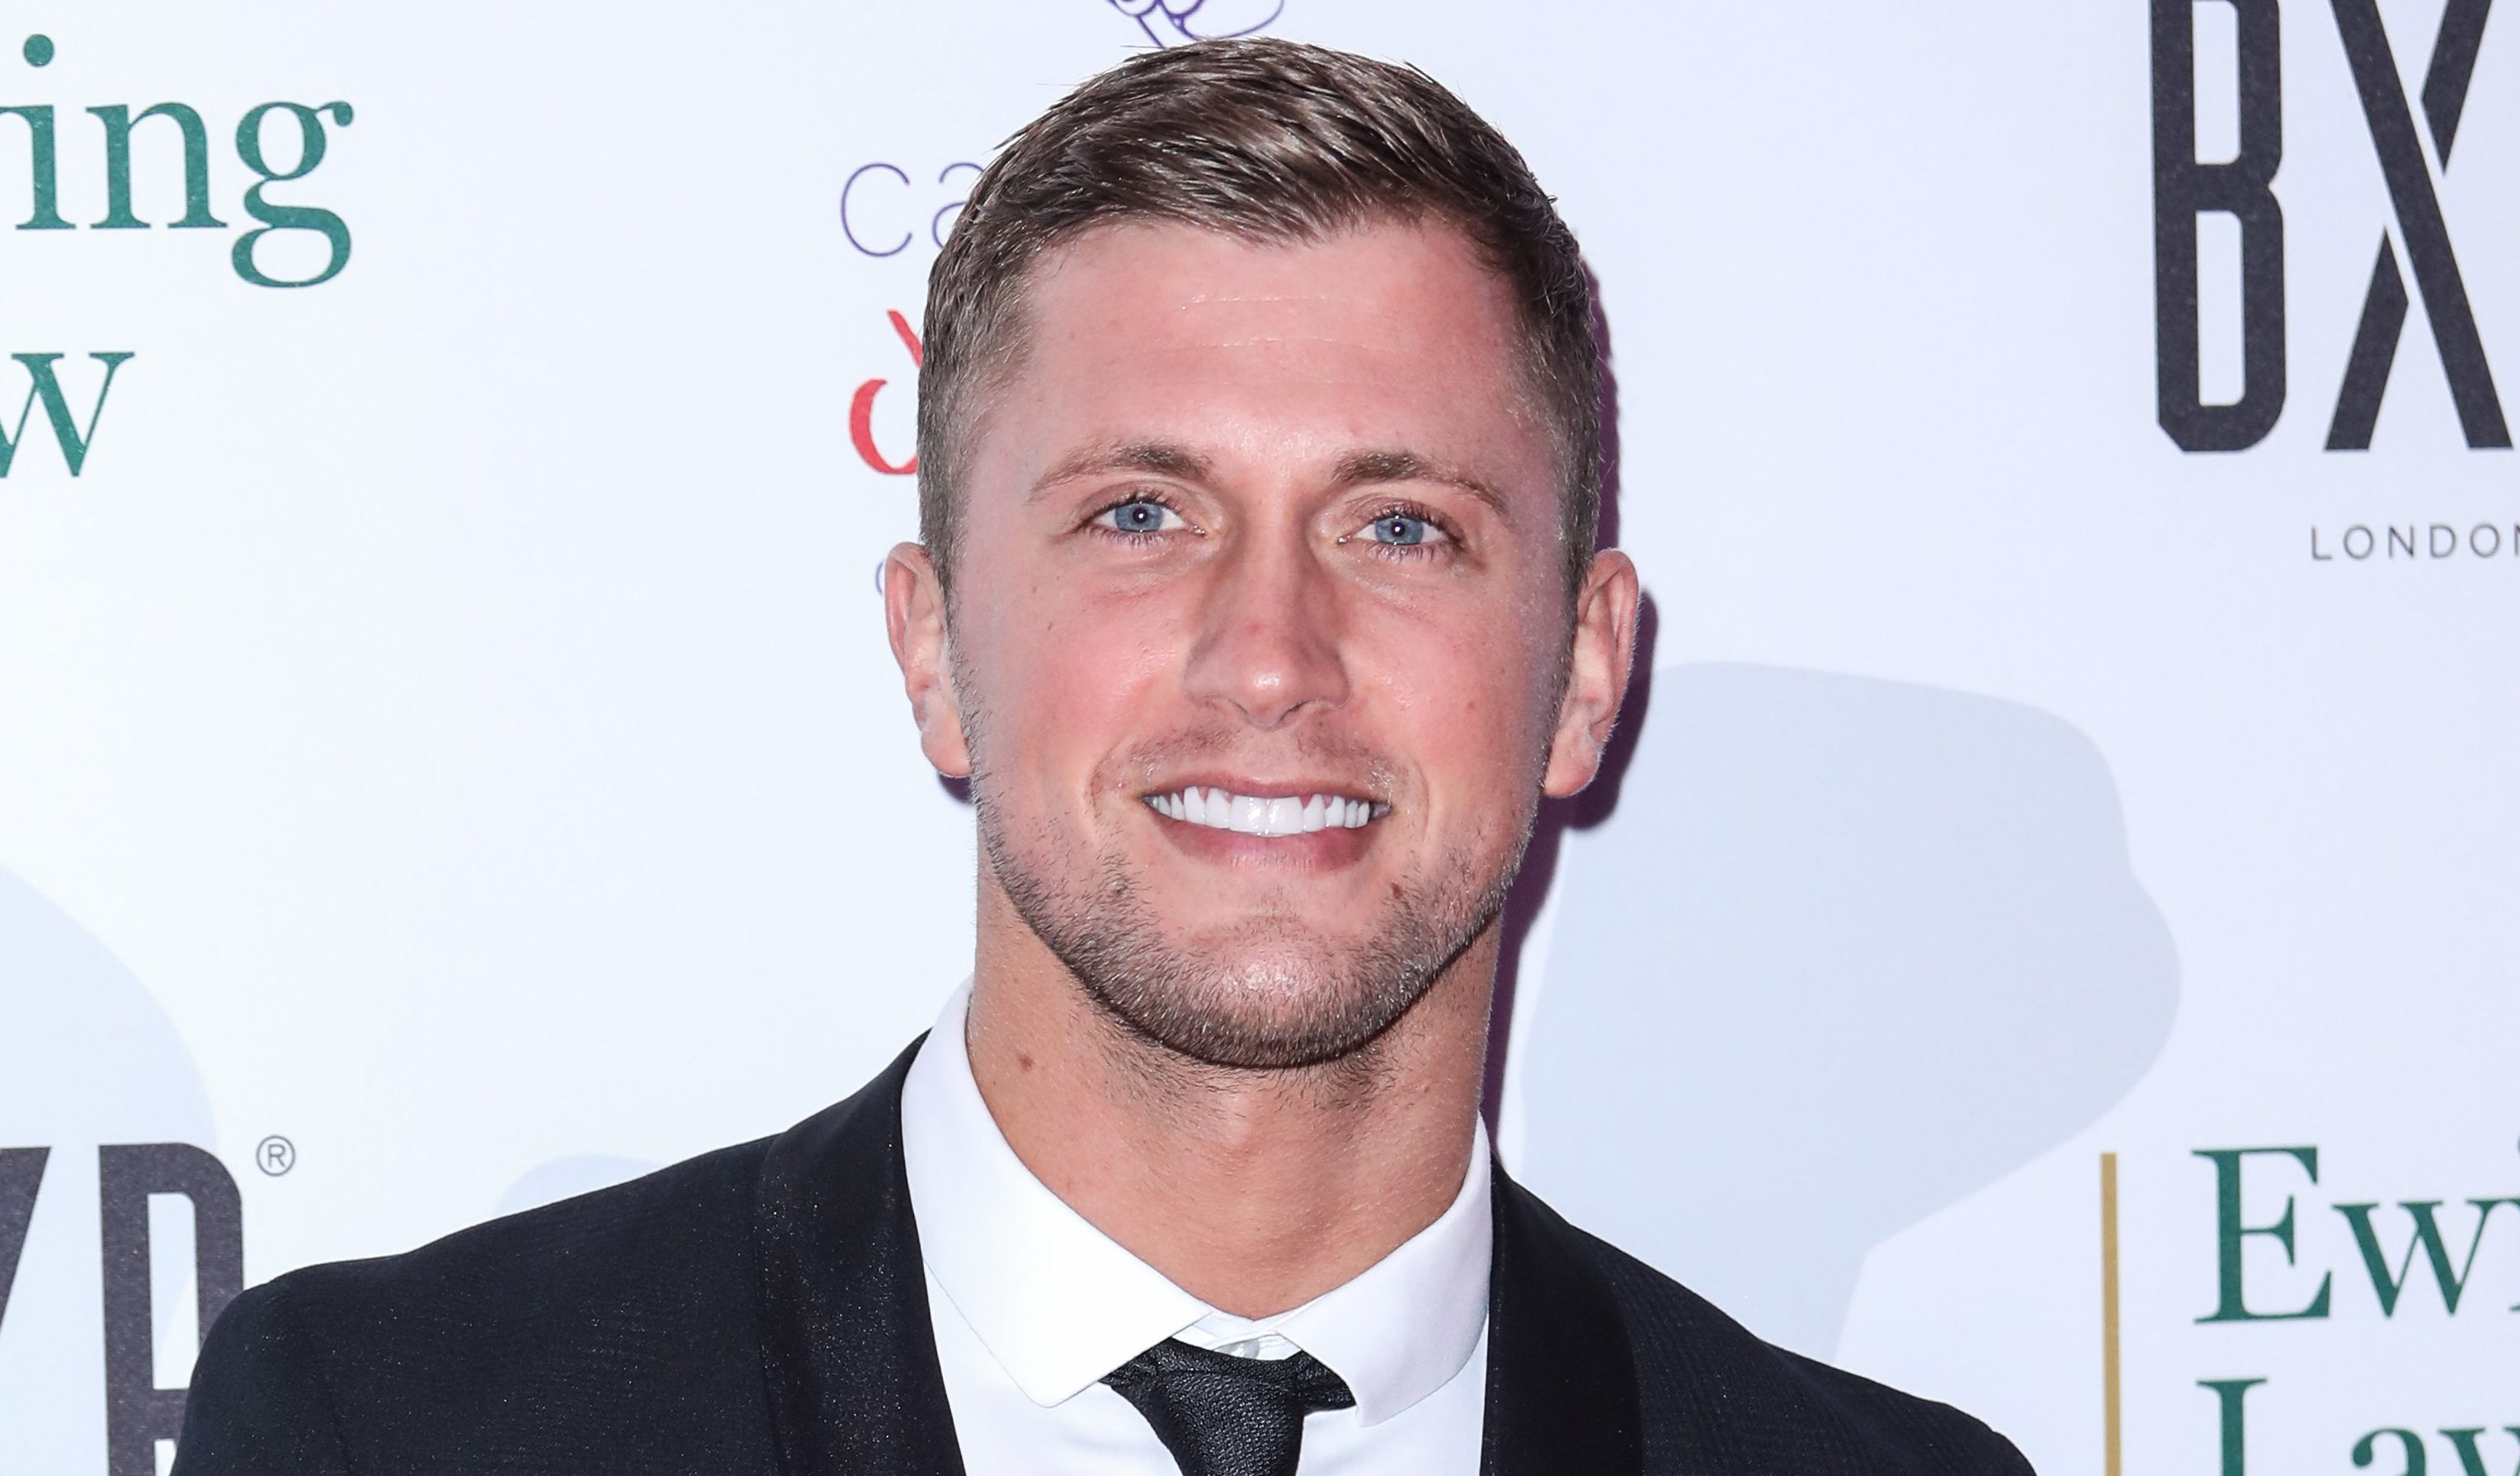 Dan Osborne Rips Into Myles Stephenson With Brutal Comments